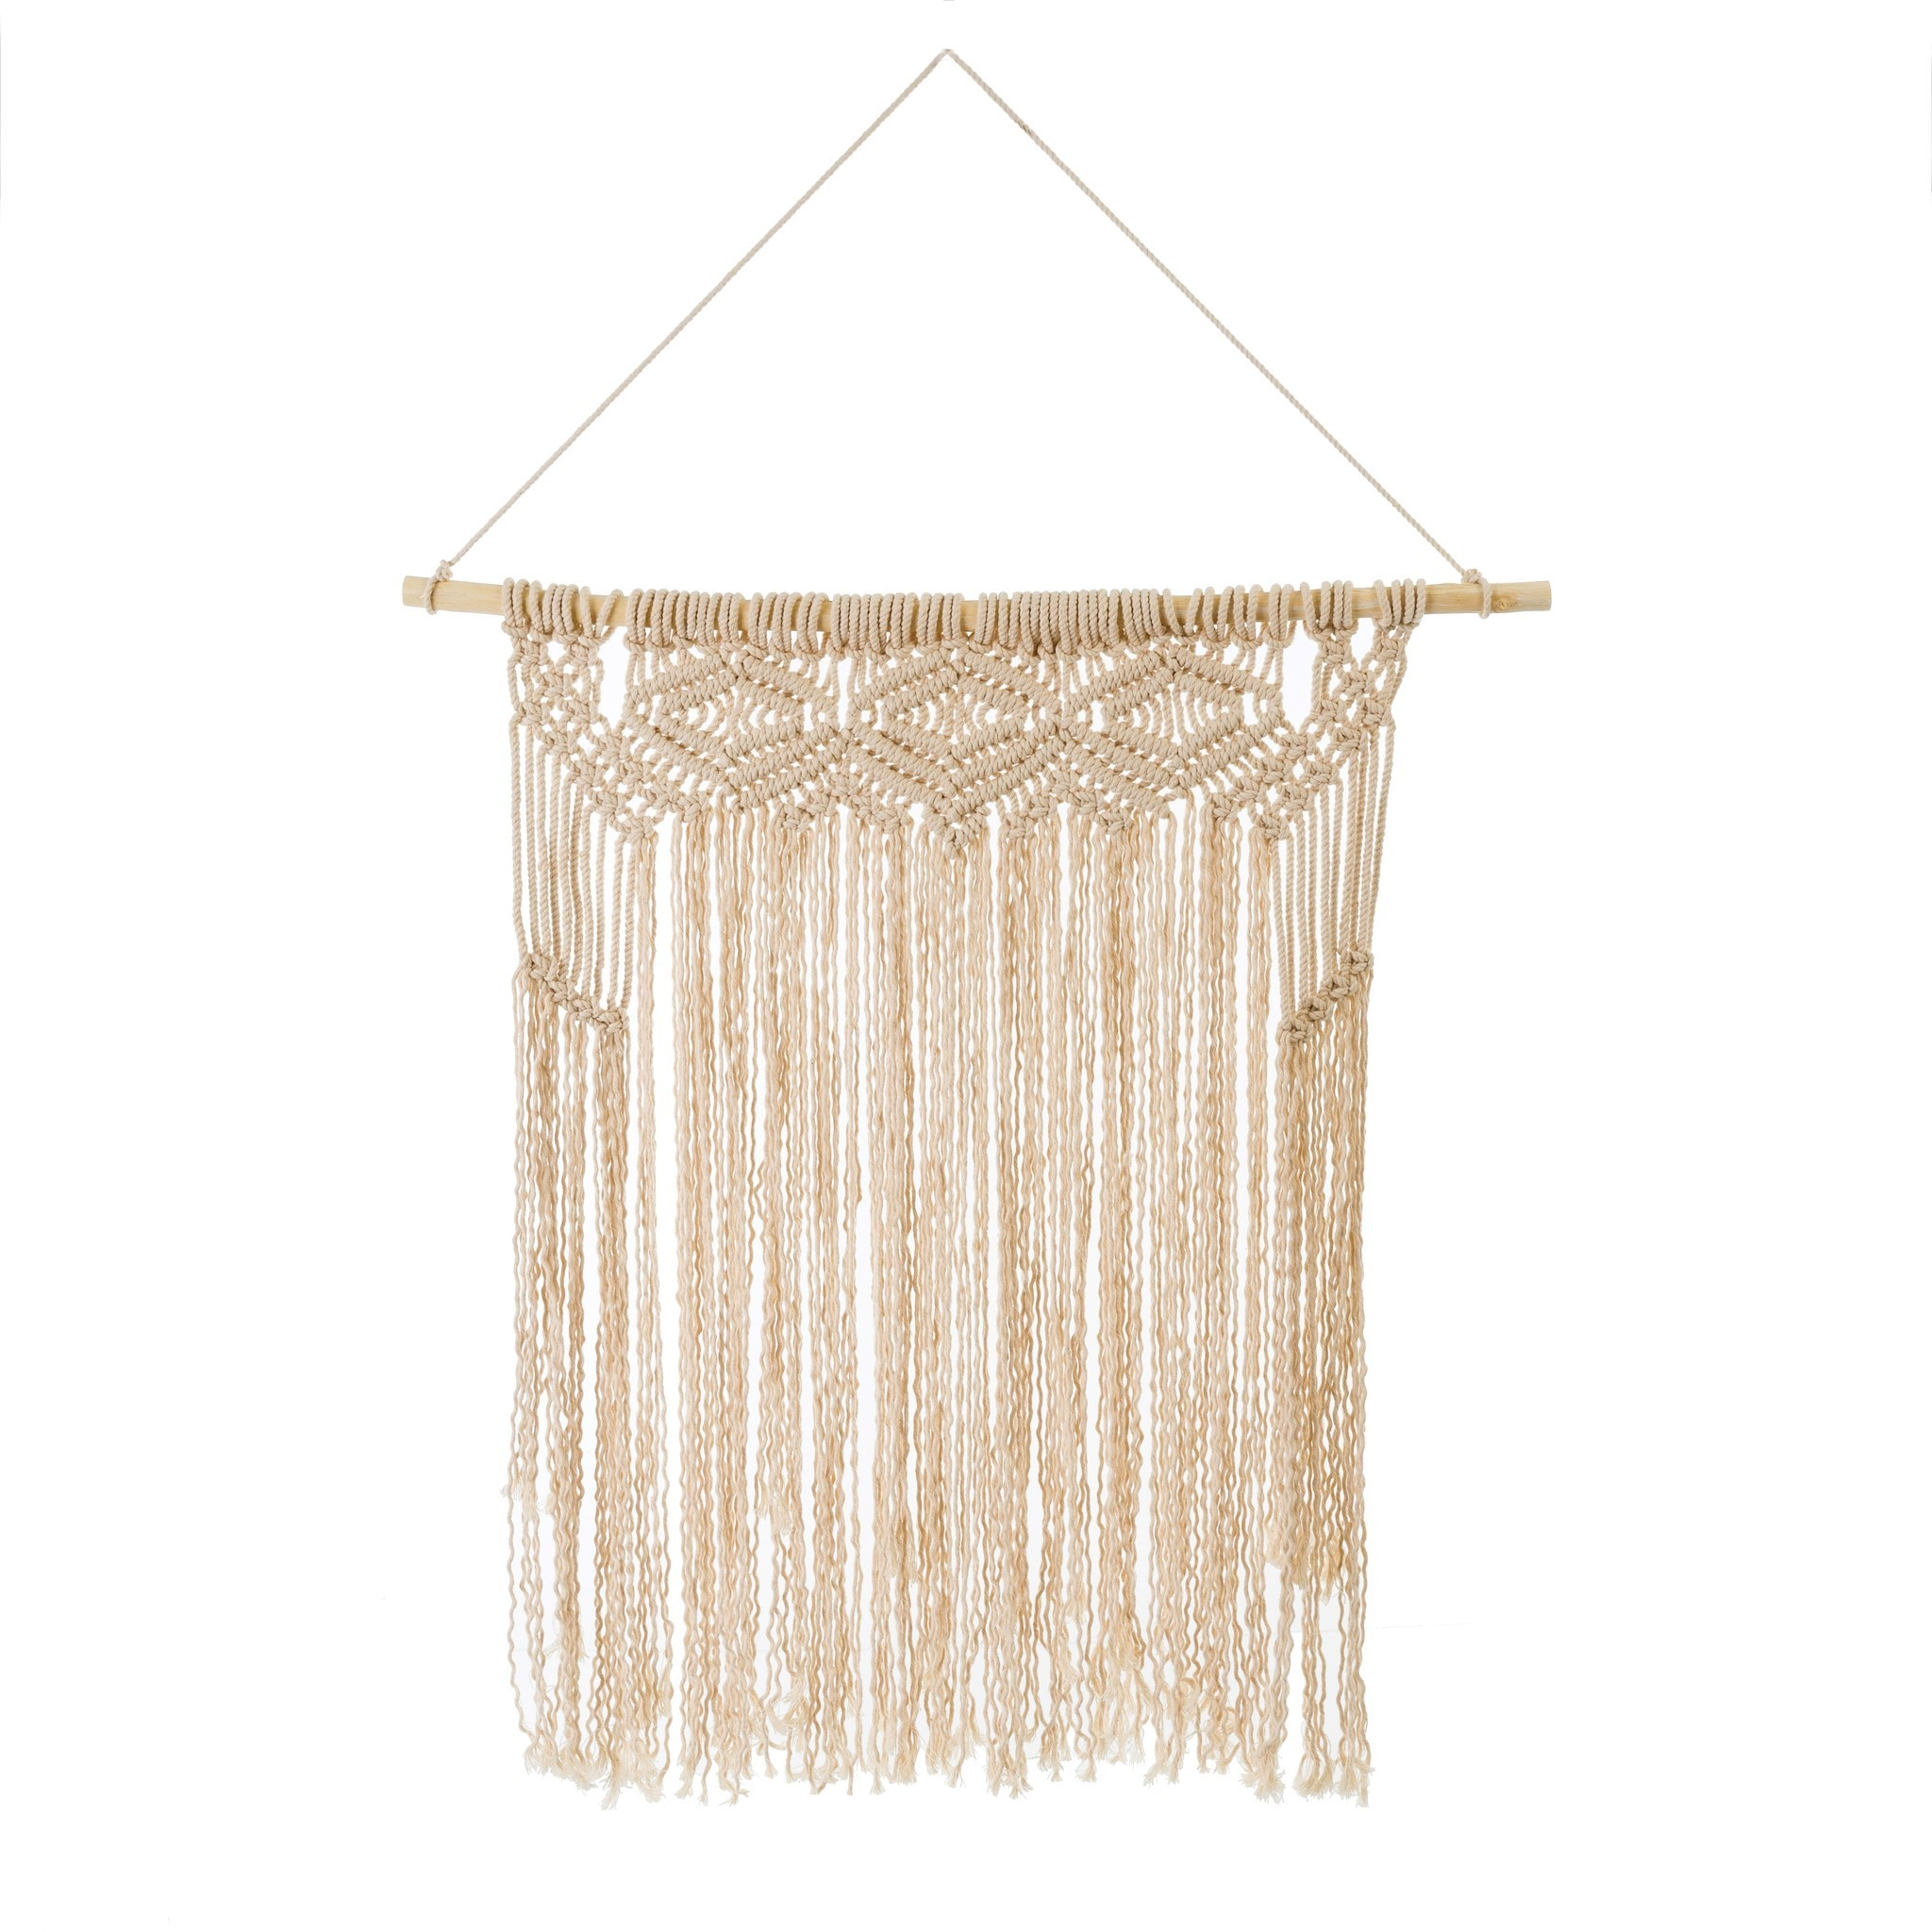 Cotton Macrame Wall Hanging in Natural, Amanda's House Of Elegance  (Special Order Only)   ($50.95)